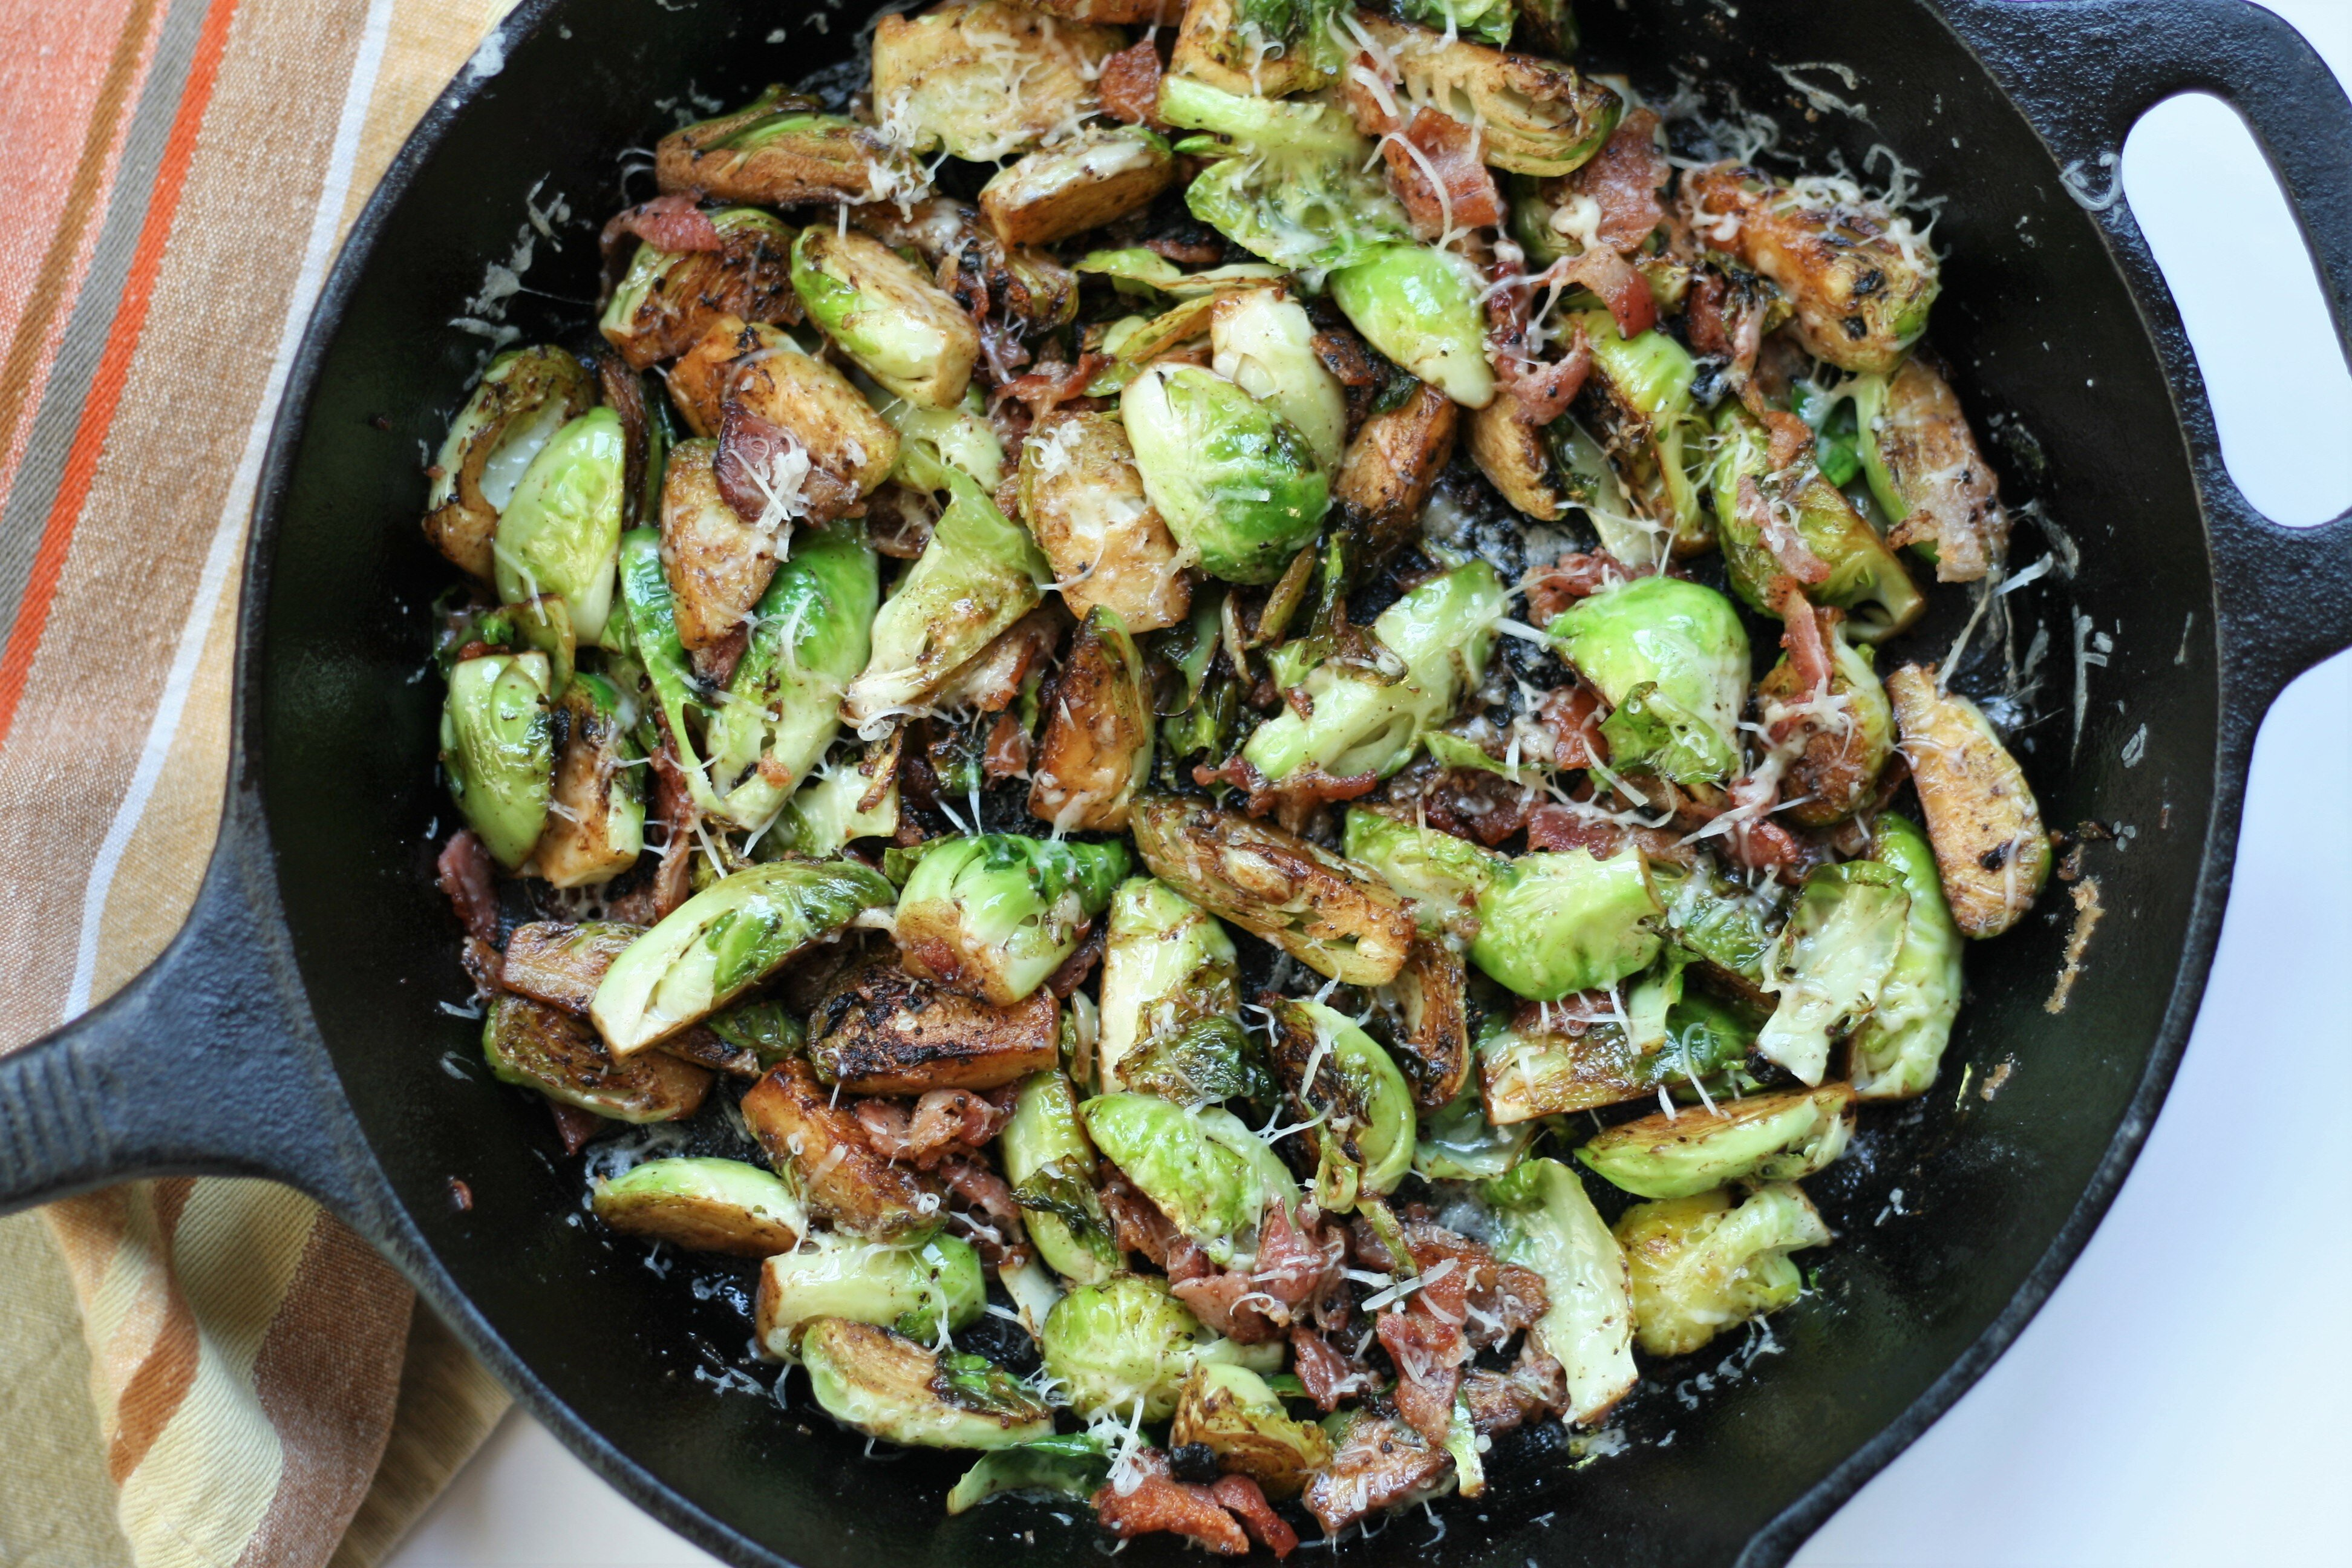 Bacon and Parmesan Brussels Sprouts with Black Garlic